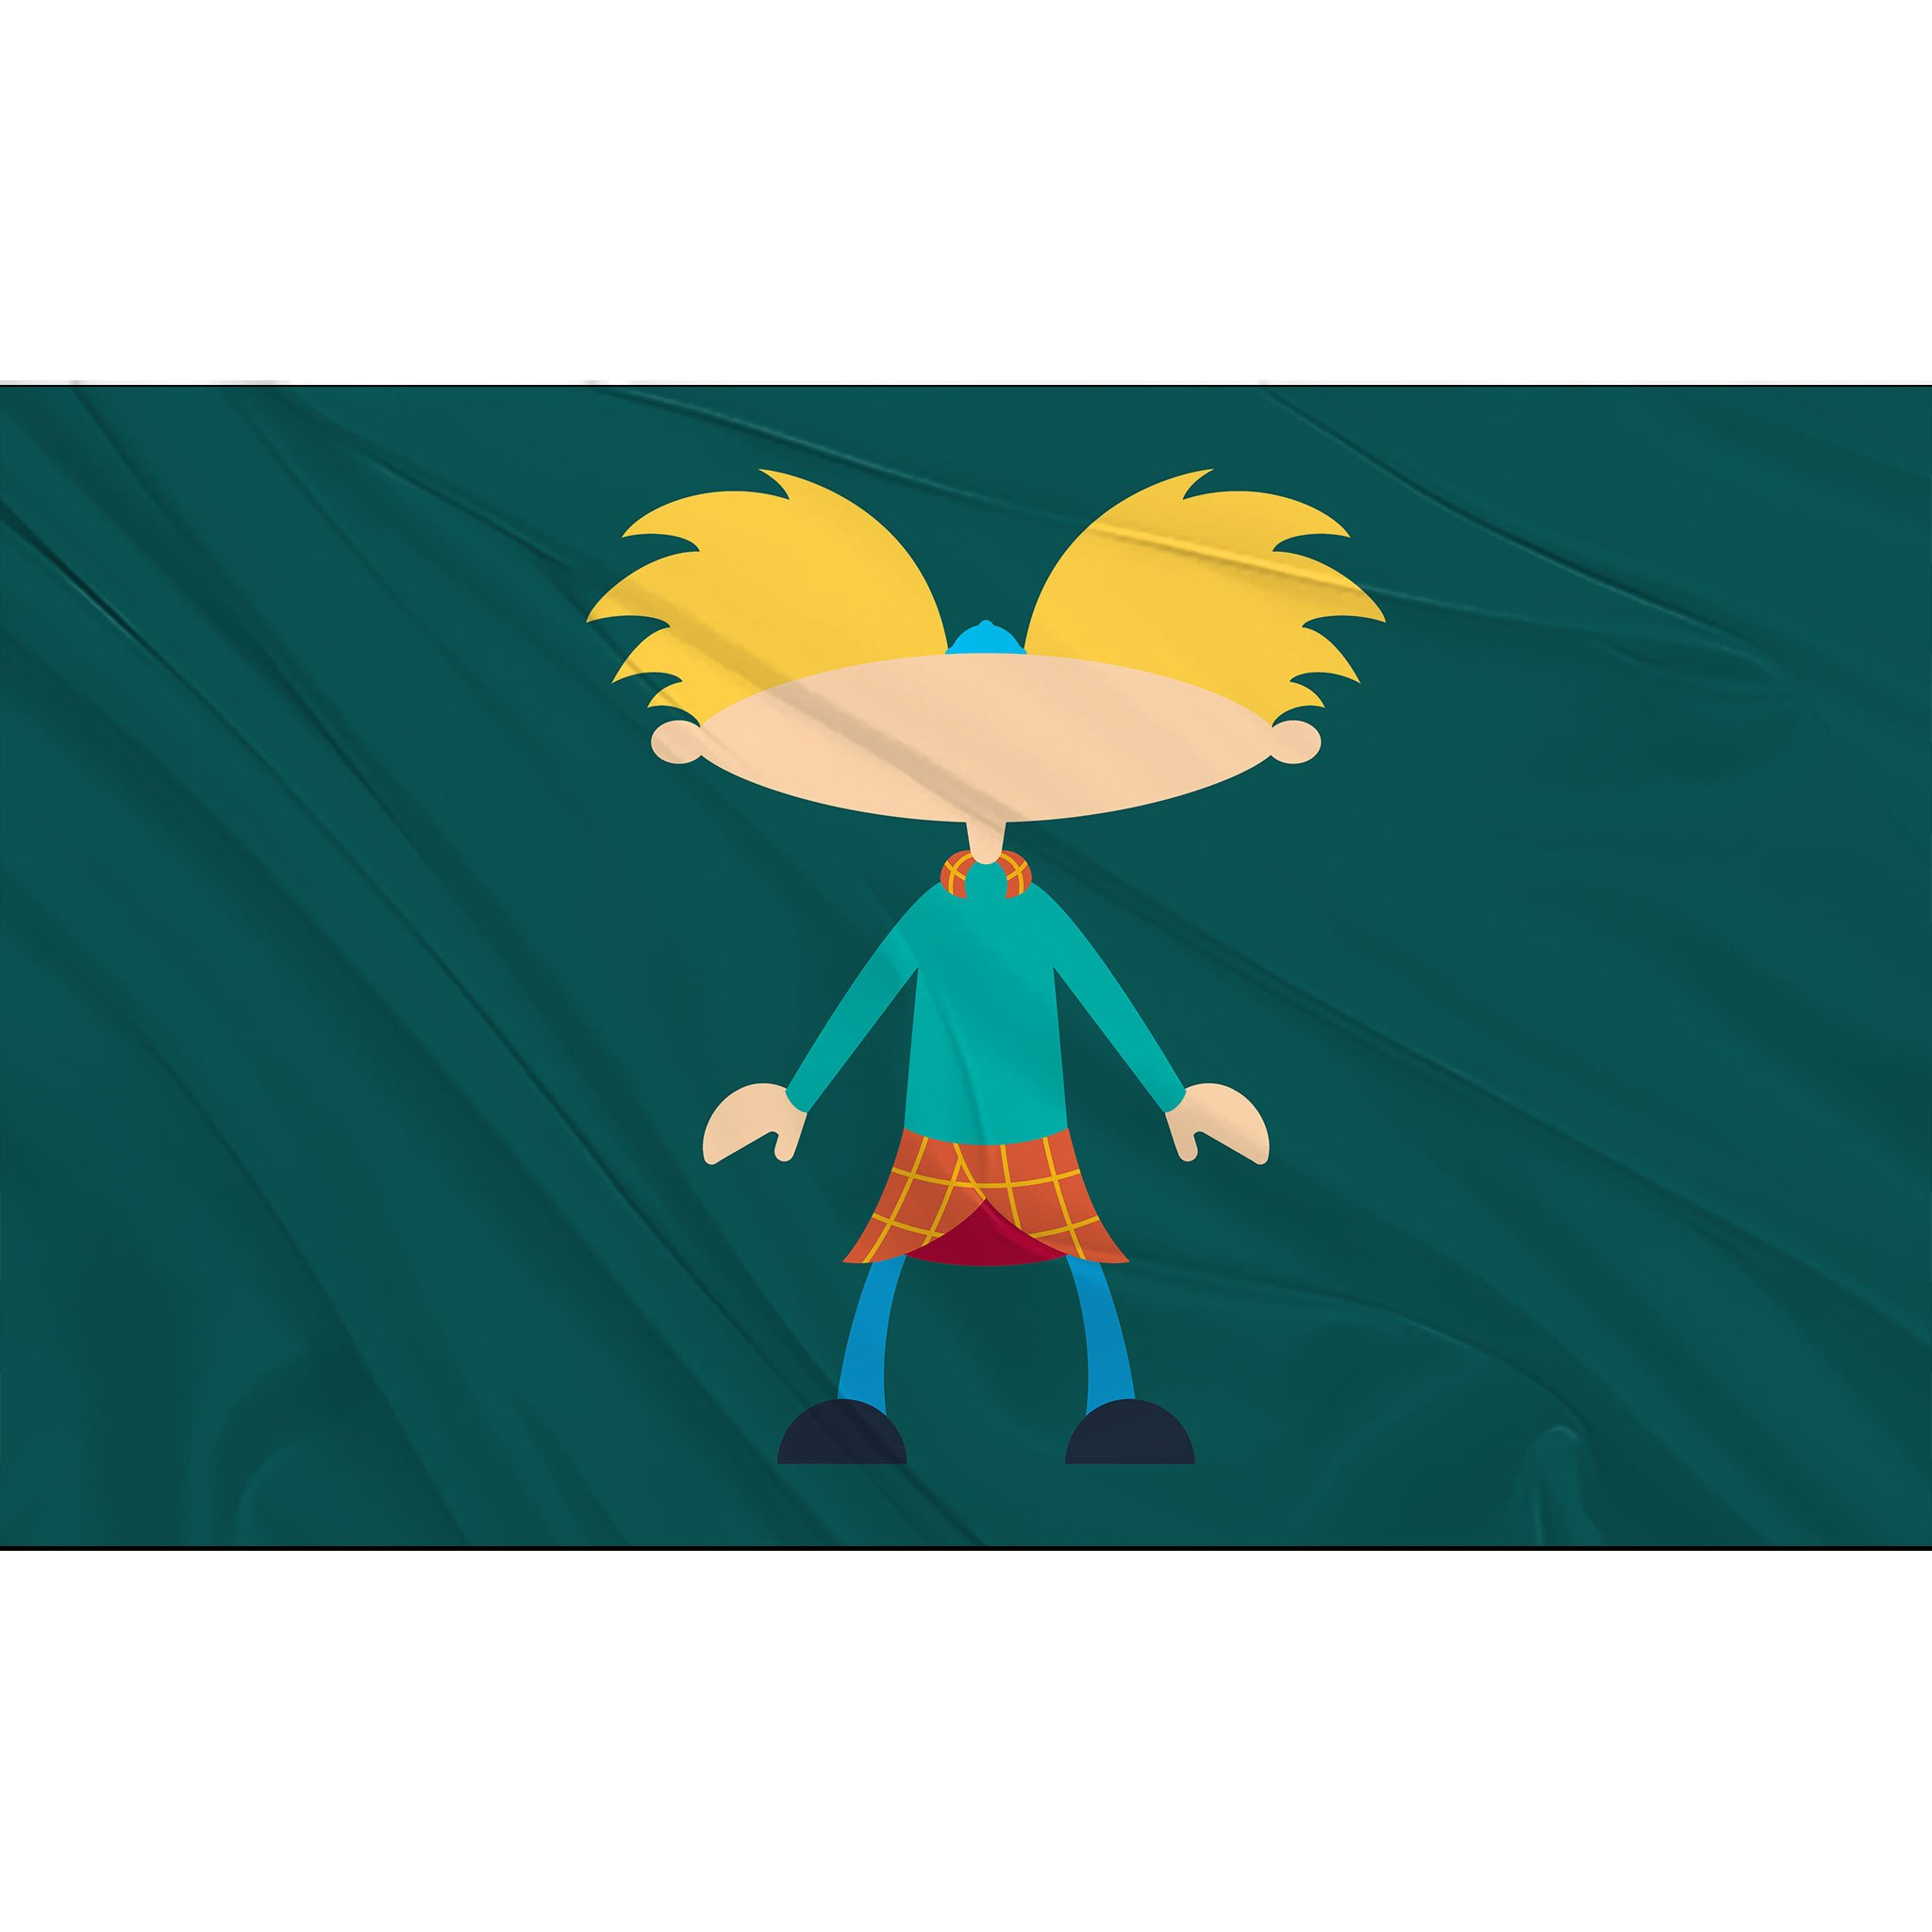 fest-flags-nickelodeon-flags-hey-arnold-flags-classic-arnold-flag